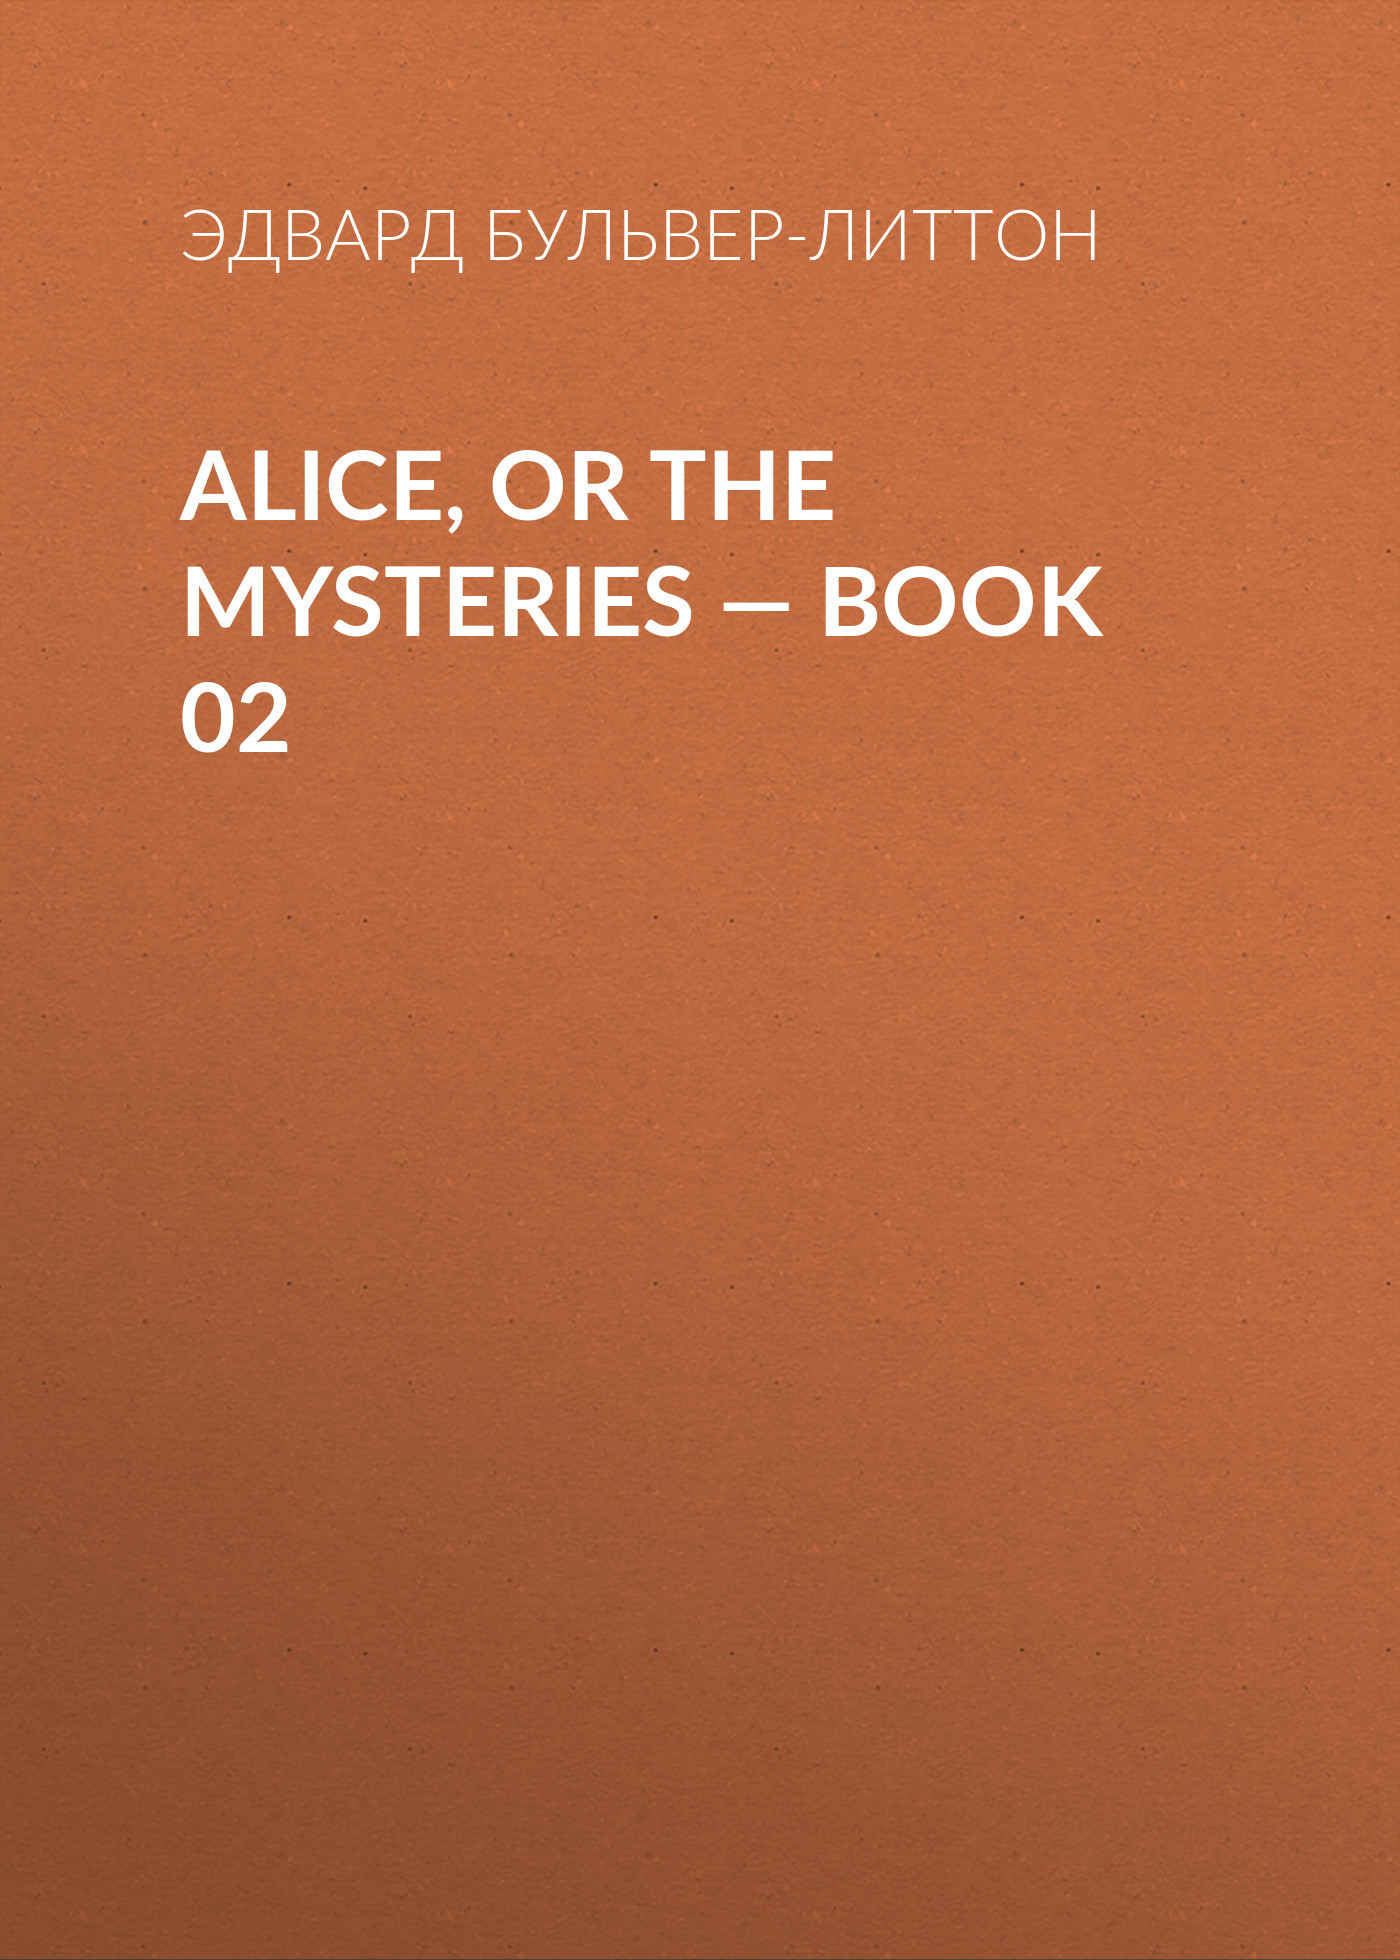 Alice, or the Mysteries — Book 02